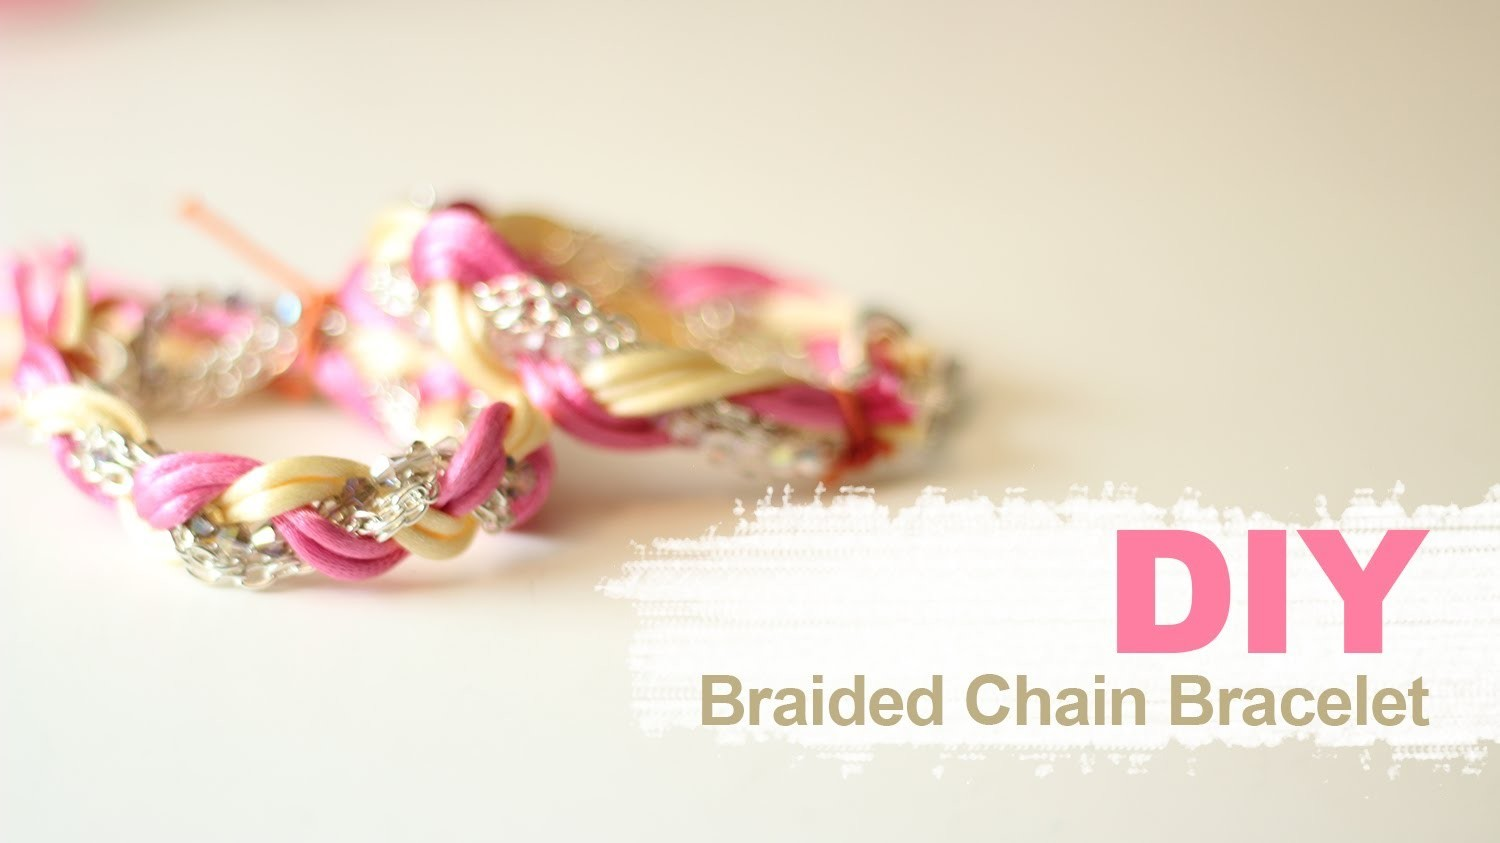 DIY Armcandy: Braided Chain Bracelet